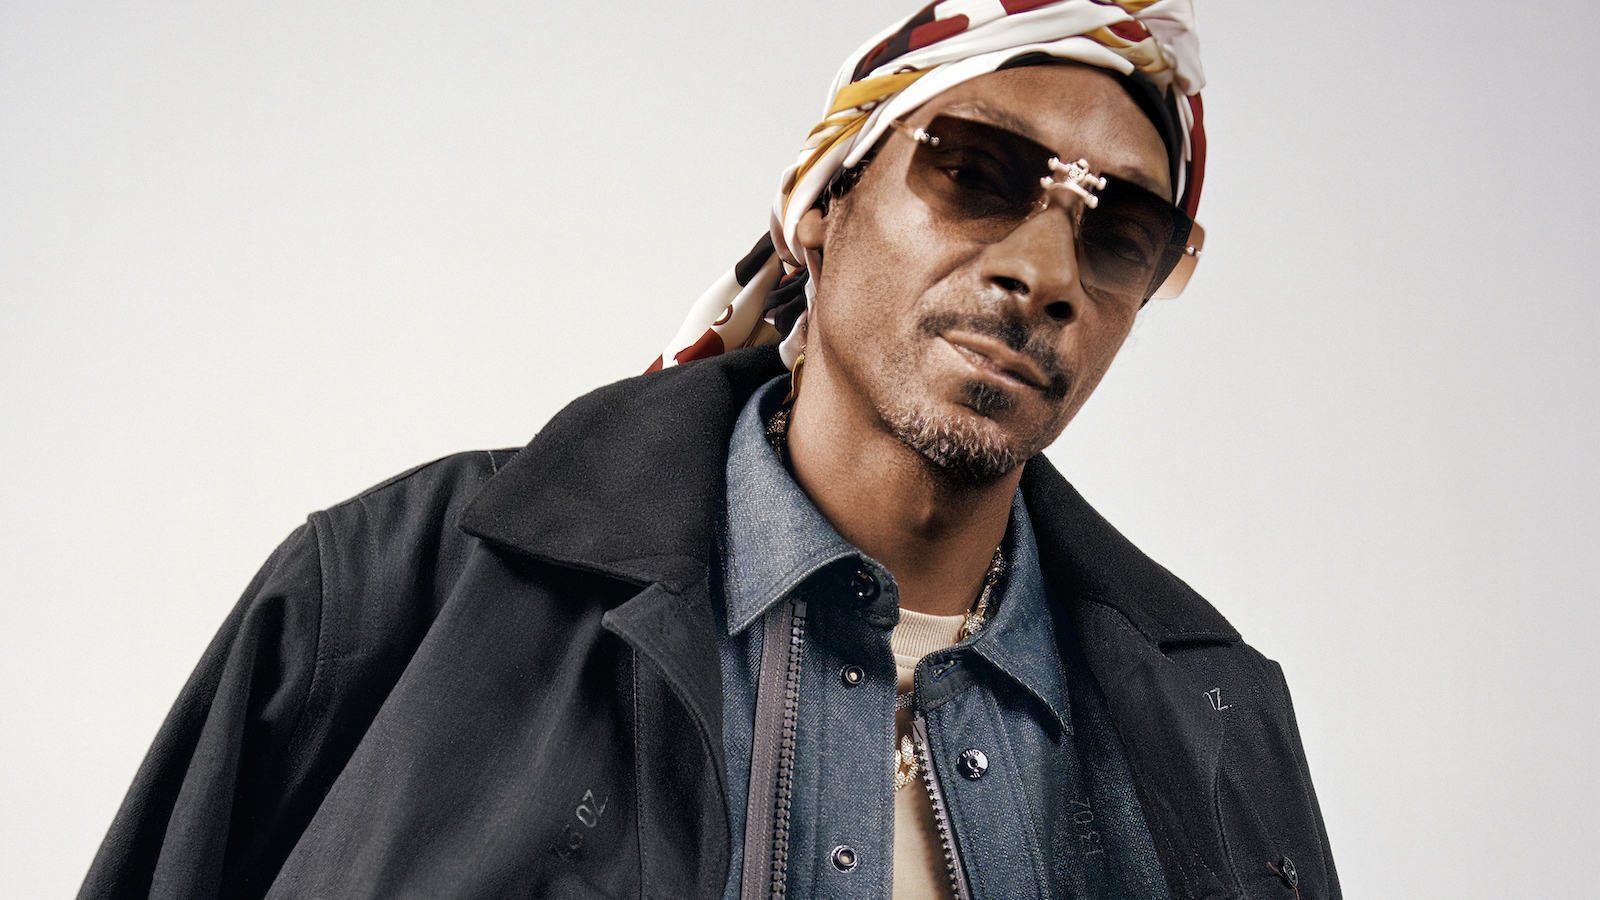 Snoop Dogg campaign for G-Star RAW